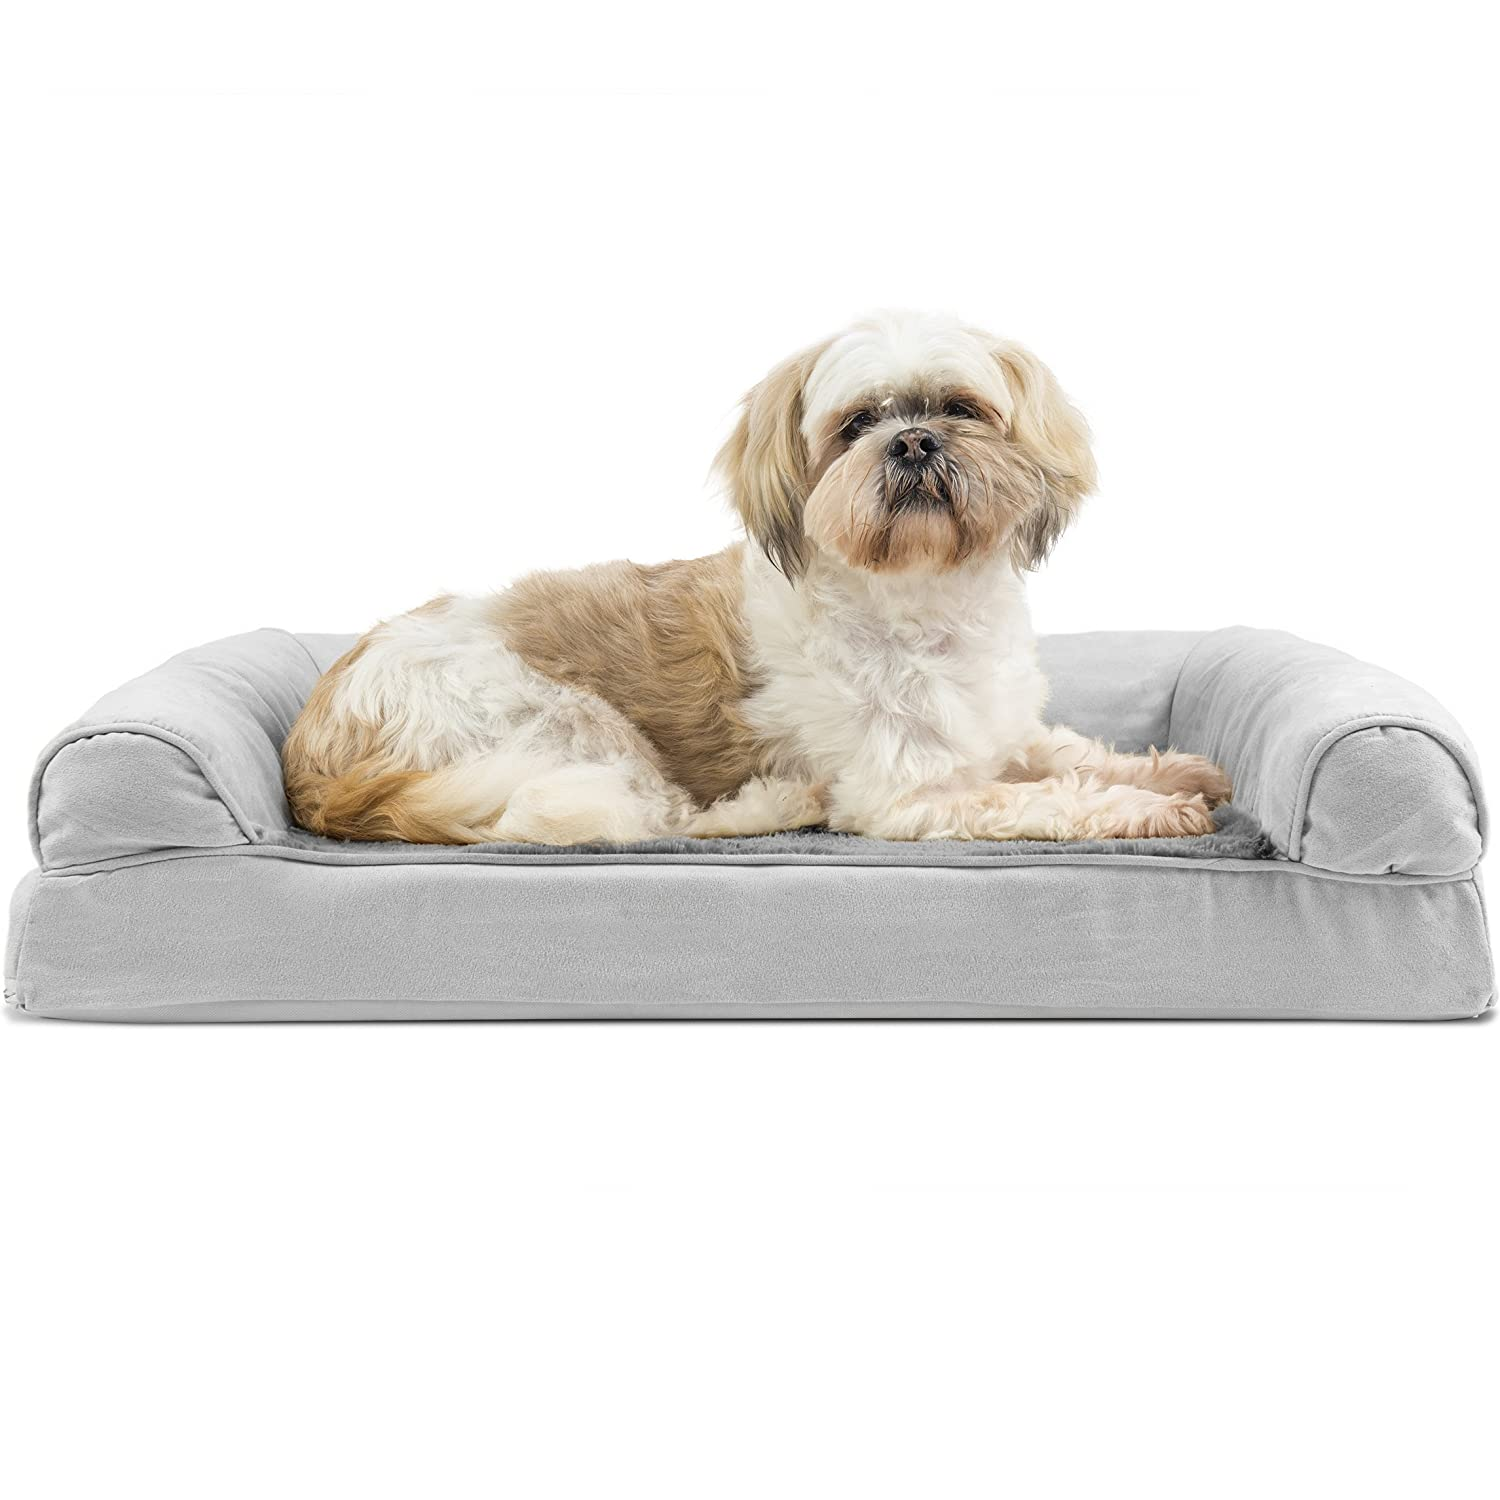 FurHaven Pet Plush and Suede Orthopedic Sofa Bed, Large, Clay FurHaven Pet Products 45436083